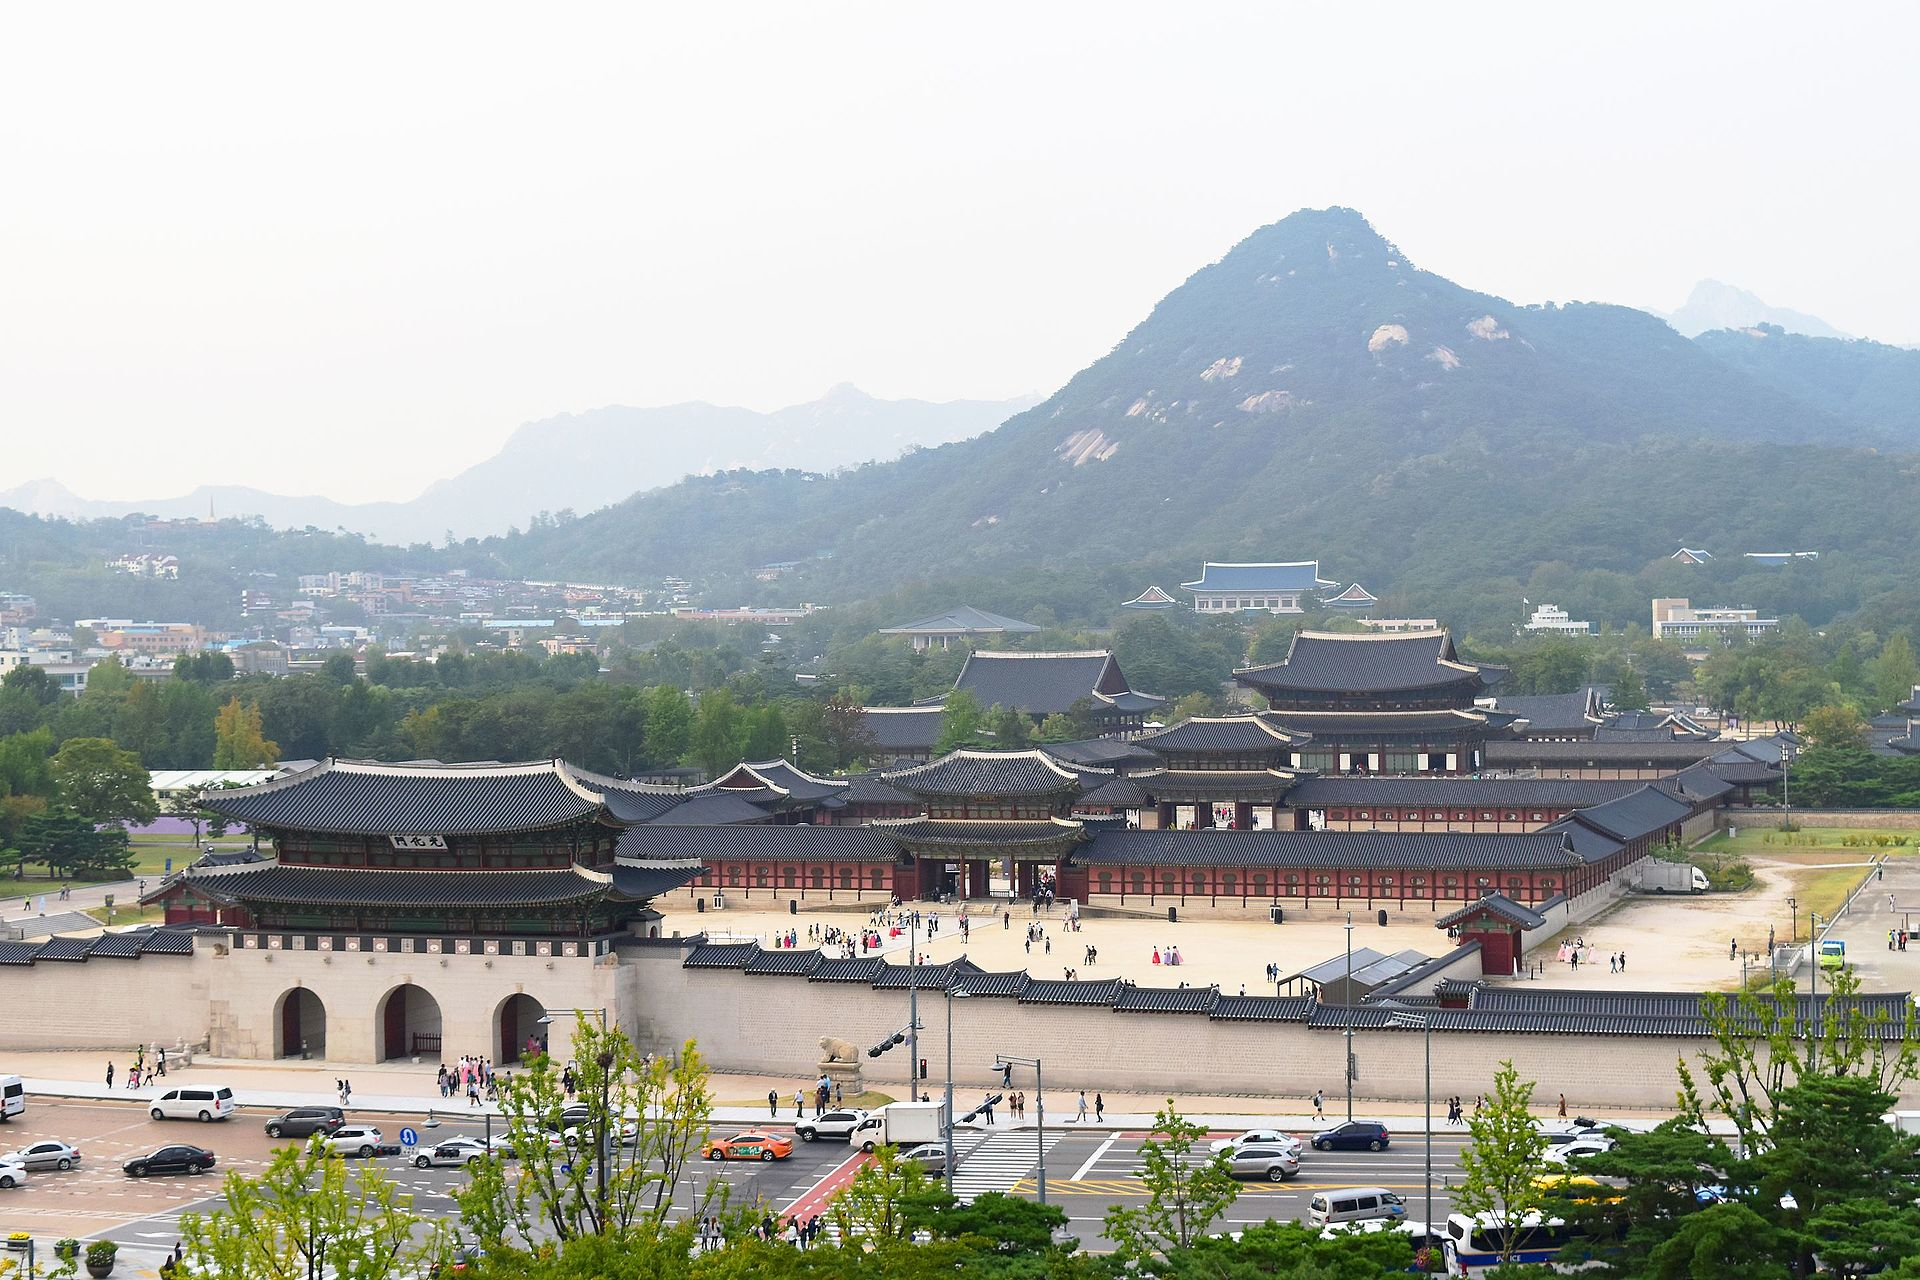 gyeongbokgung palace facts gyeongbokgung palace gyeongbokgung gyeongbokgung palace history gyeongbokgung palace hanbok gyeongbokgung palace entrance fee gyeongbokgung palace map gyeonghoeru pavilion geunjeongjeon gyeongbokgung palace tour gyeongbokgung palace opening hours hanboknam gyeongbokgung hanbok rental gyeongbokgung palace to bukchon hanok village hyangwonjeong hanbok rental gyeongbokgung gyeongbokgung palace winter gyeongbokgung palace price hanboknam gyeongbokgung best hanbok rental near gyeongbokgung hyangwonjeong pavilion gyeongbokgung palace hanbok rental gyeongbokgung palace ticket myeongdong to gyeongbokgung palace gyeongbokgung palace hours gyeongbokgung palace subway gyeongbokgung palace museum hanboknam gyeongbokgung store gyeongbokgung palace facts gyeongbokgung hanbok gyeongbokgung palace architecture gyeongbokgung palace to bukchon hanok village distance gyeongbokgung palace ticket price gyeongbokgung palace address gyeongbokgung map bts gyeongbokgung gyeongbokgung palace kdrama bukchon hanok village to gyeongbokgung palace hanbok rental near gyeongbokgung gyeongbokgung palace in korean gyeongbokgung palace fee hanbok rental near gyeongbokgung palace gyeongbokgung palace location gyeongbokgung opening hours gyeongbokgung palace entrance gyeongbokgung palace admission fee gyeongbokgung palace entry fee gyeongbokgung entrance fee gyeongbokgung palace autumn kyung bok gung palace gyeongbokgung palace description gyeongbokgung palace to changdeokgung palace gyeongbokgung palace schedule gyeongbokgung palace to hanok village korean palace gyeongbokgung sejarah gyeongbokgung palace gyeongbokgung to bukchon hanok village gyeongbokgung palace night tour history of gyeongbokgung palace gyeongbokgung palace to insadong gyeongbokgung palace quotes gyeongbokgung palace to myeongdong gyeongbokgung palace night le palais royal de gyeongbokgung gyeongbokgung palace cost myeongdong to gyeongbokgung cheap hanbok rental near gyeongbokgung things to do near gyeongbokgung palace gyeongbokgung palace inside gyeongbokgung palace at night the gyeongbokgung palace hanbok rental in gyeongbokgung palace inside gyeongbokgung palace heungnyemun rent hanbok in gyeongbokgung palace kyongbokkung palace gyeongbokgung palace opening days hanbok gyeongbokgung palace hongdae to gyeongbokgung palace myeongdong to gyeongbokgung palace by subway gyeongbokgung palace closed day gyeongbokgung history hanboknam to gyeongbokgung palace from gyeongbokgung palace to bukchon hanok village gyeongbokgung palace and bukchon hanok village gyeongbokgung museum